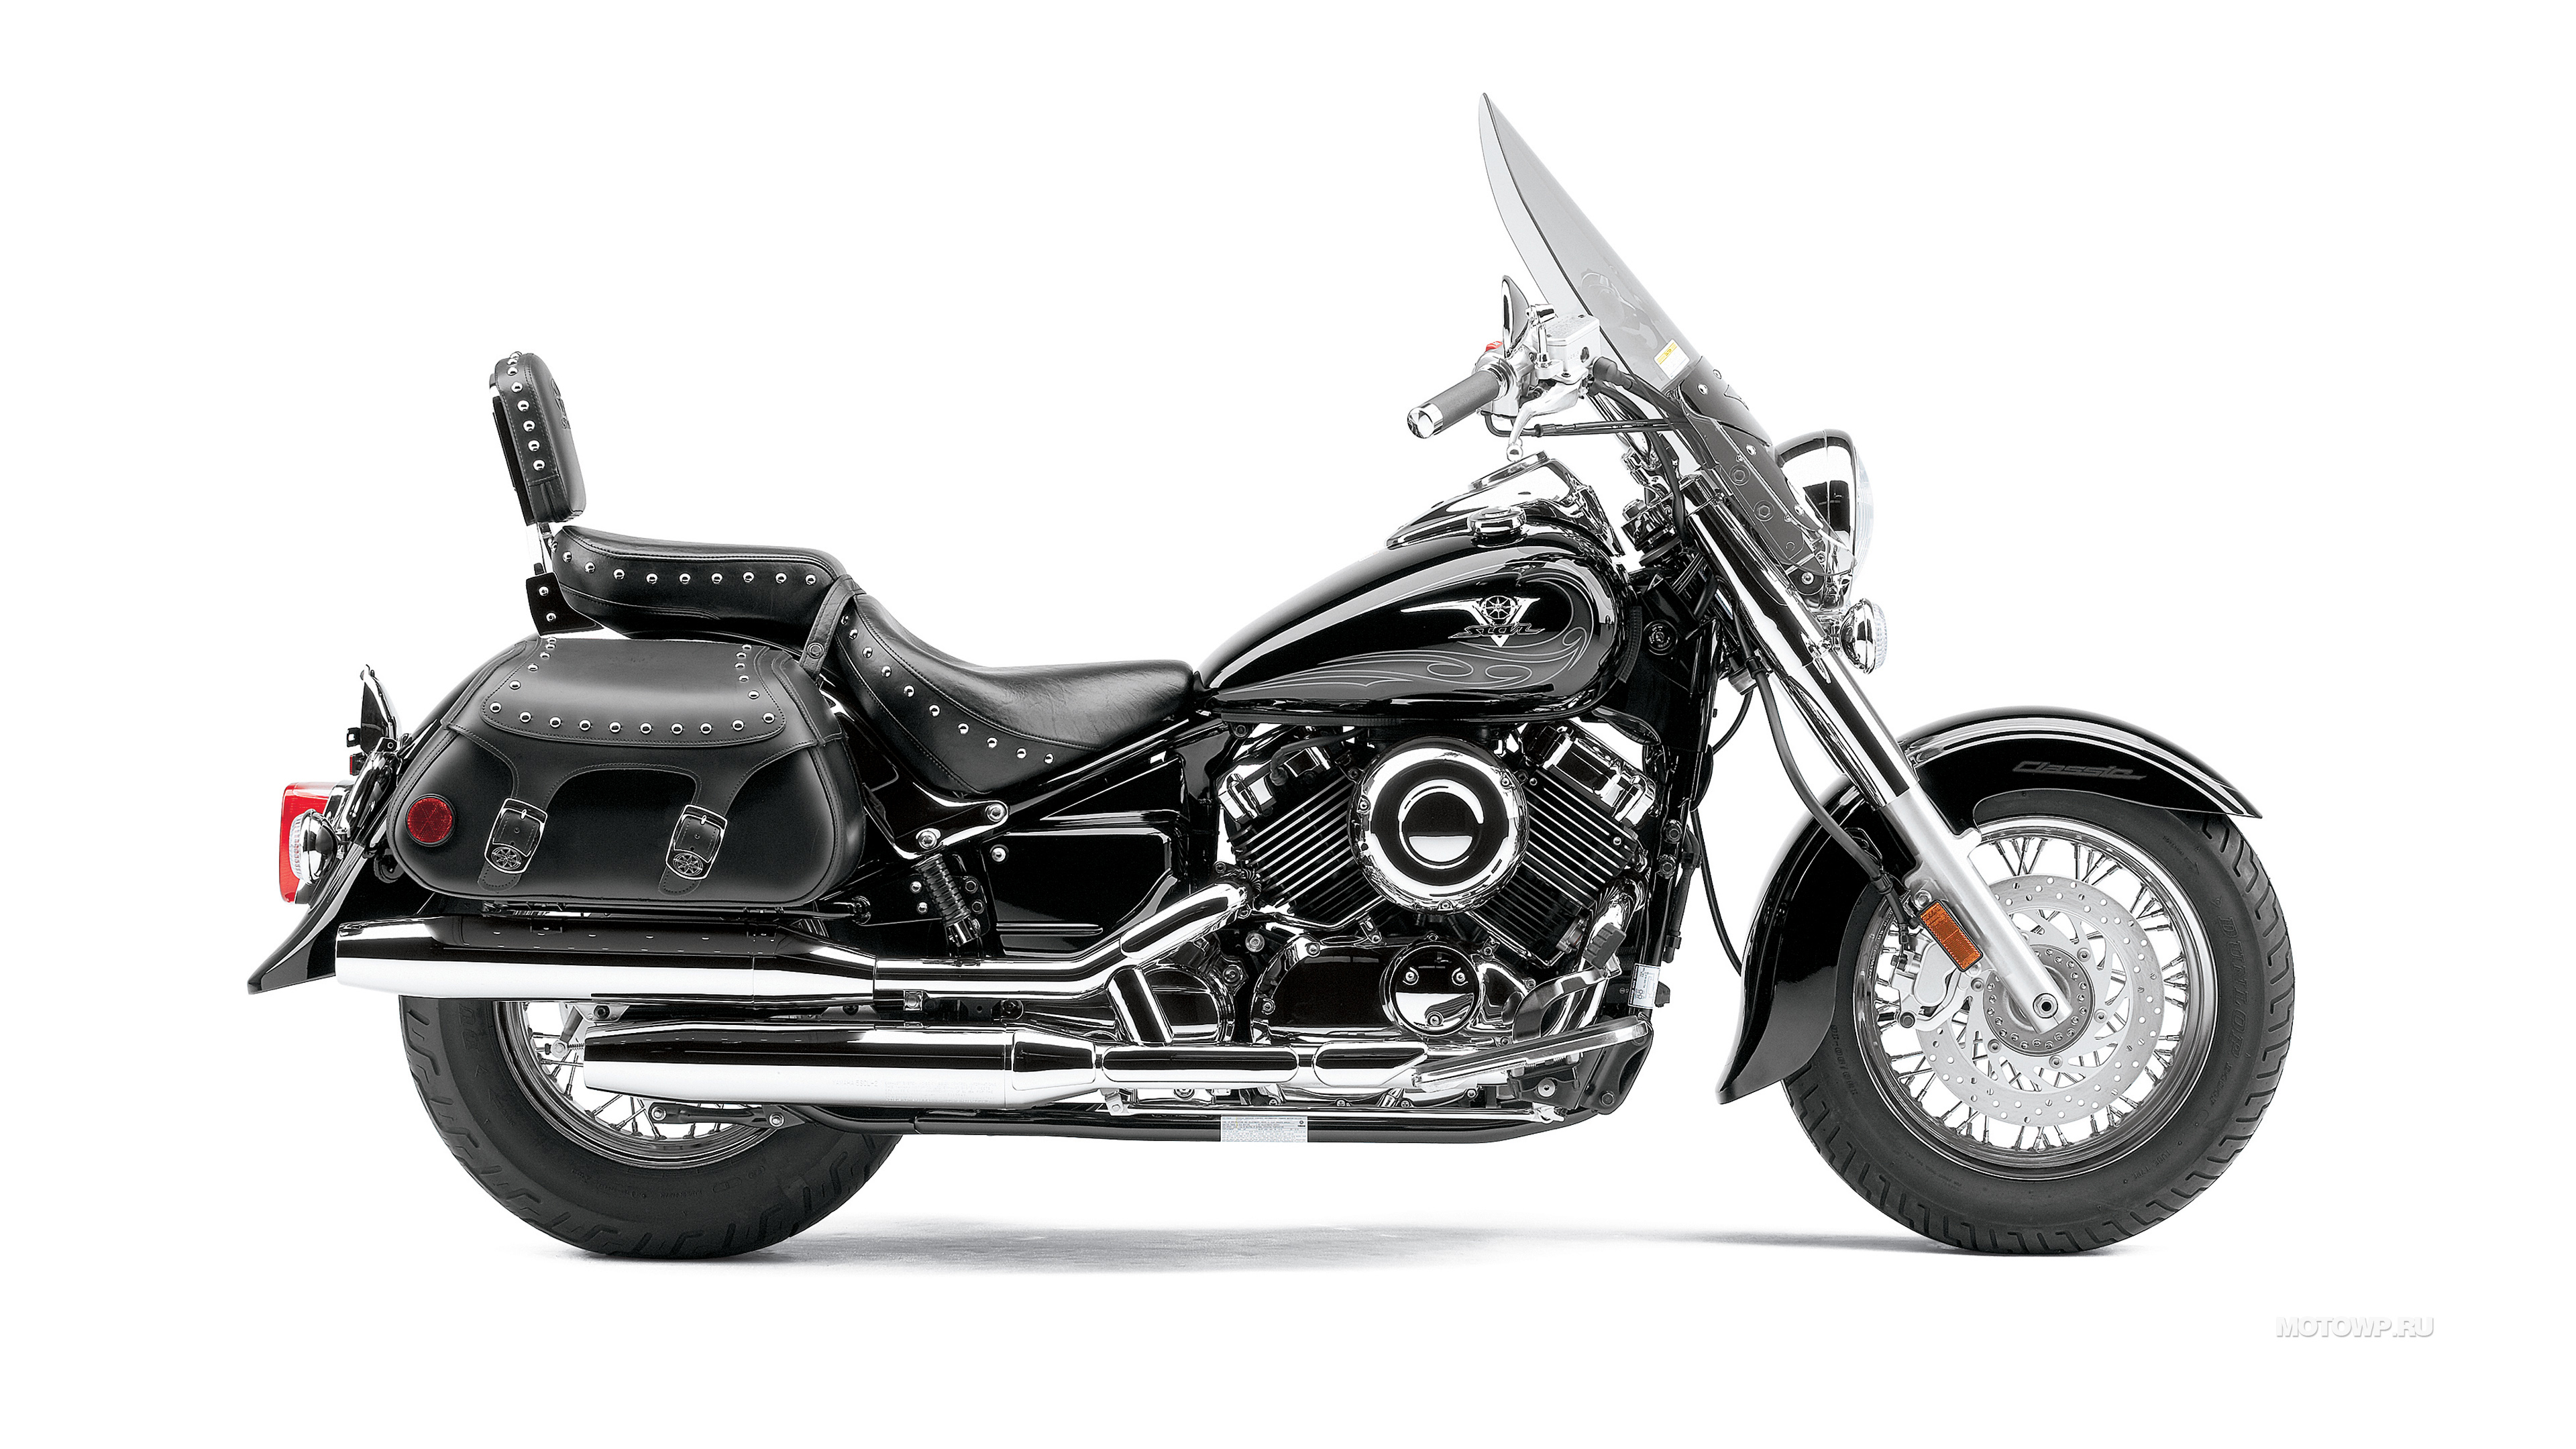 2008 Yamaha V Star 1100 Custom Manual